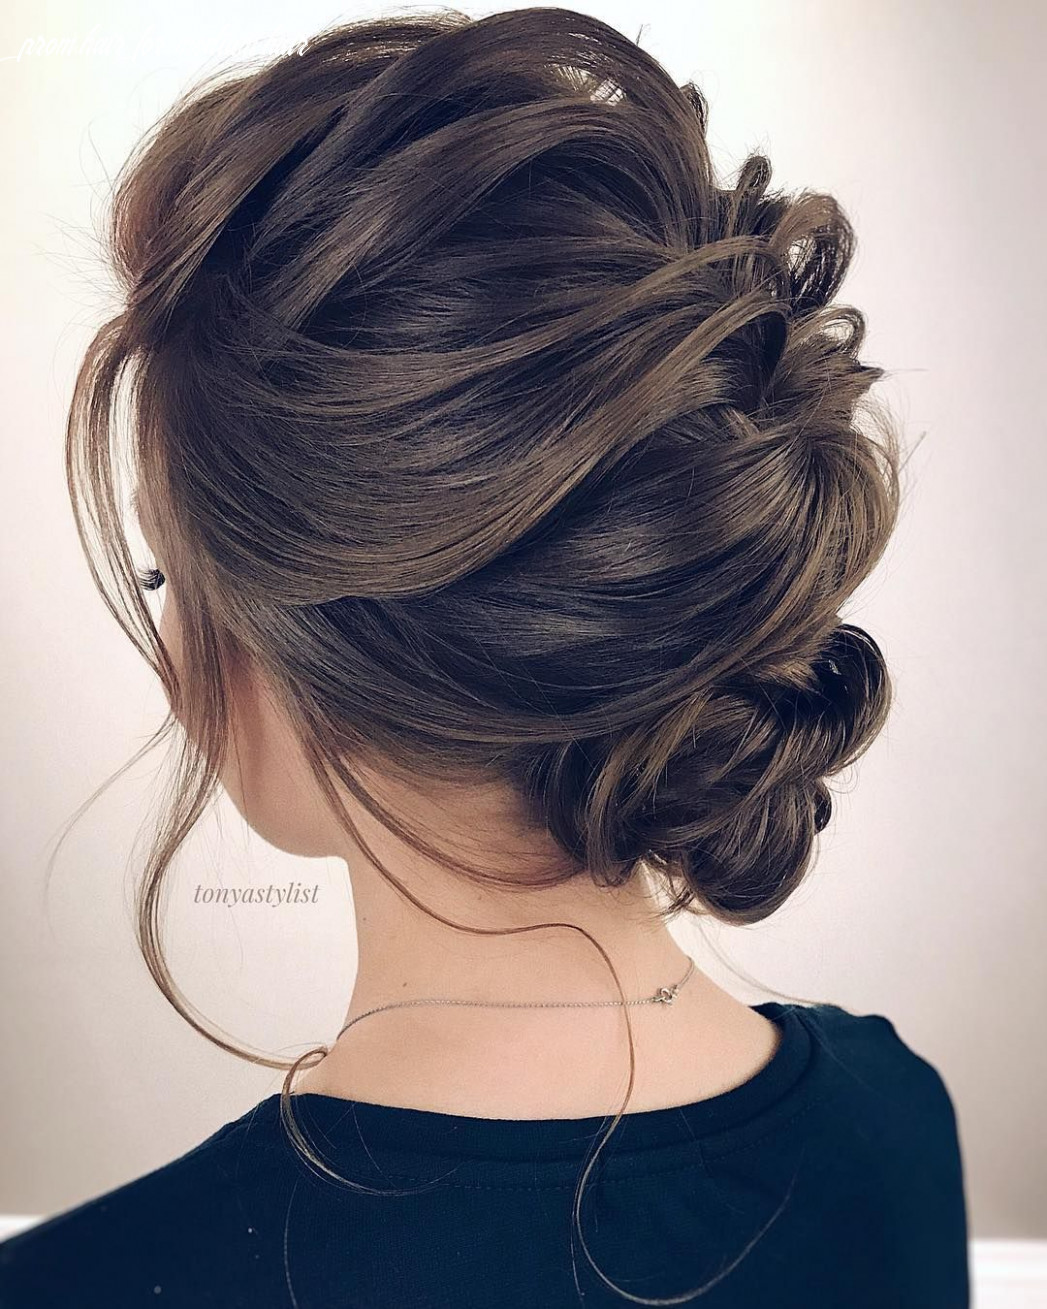 Prom Hairstyles For Medium Hair Updo Sporty - 8 updos for medium ...